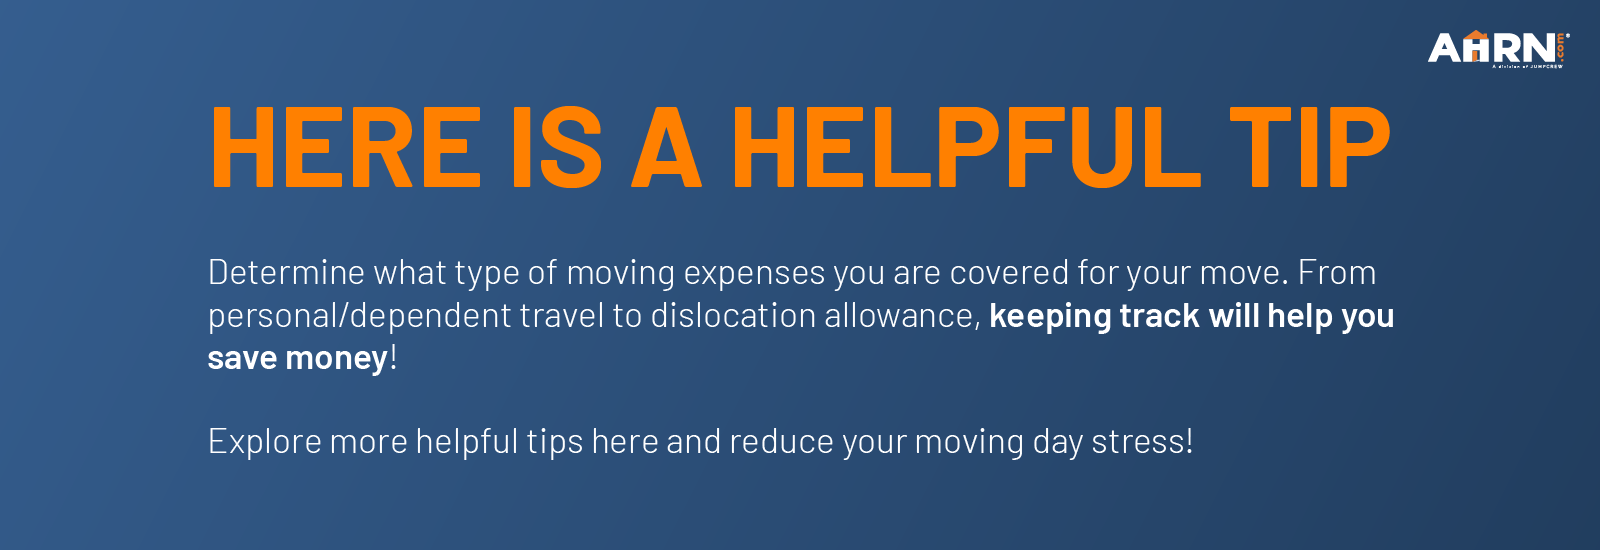 Here is a helpful tip! Determine what type of moving expenses you are covered for your move. From personal/dependent travel to dislocation allowance, keeping track will help you save money! Explore more helpful tips here and reduce your moving day stress!